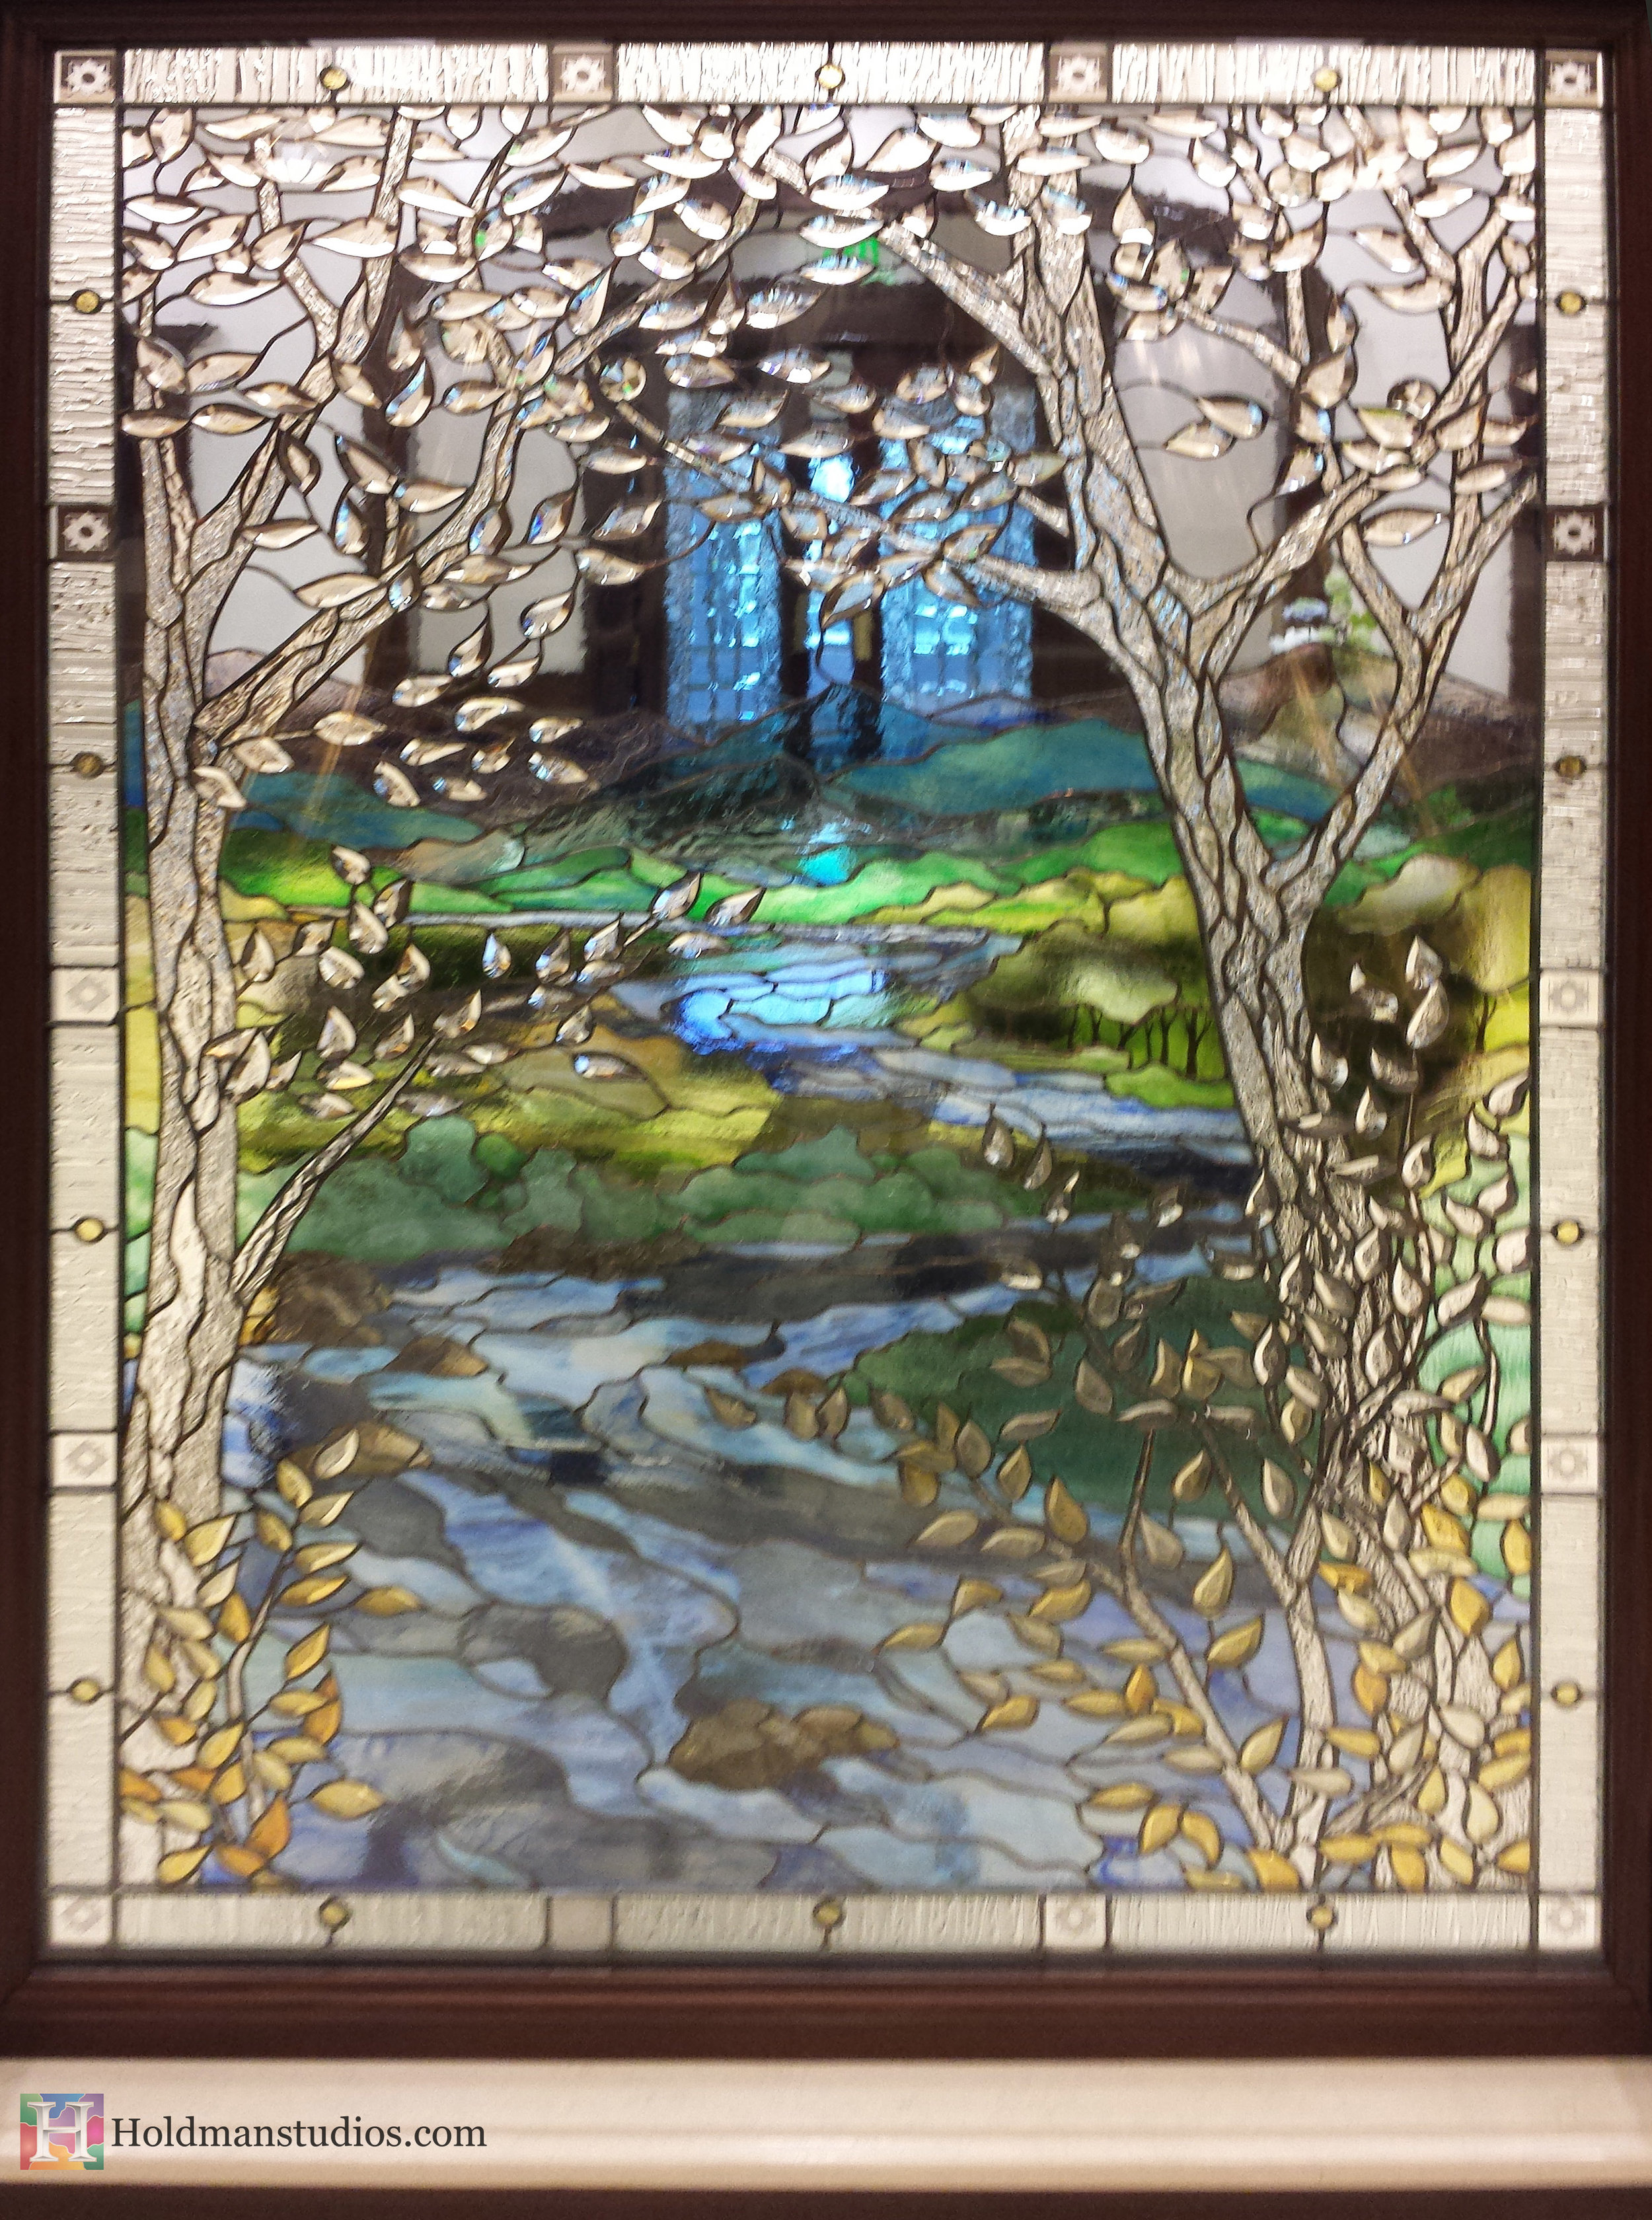 Holdman_Studios_Stained_Art_Glass_LDS_Mormon_Temple_Boise_Idaho_Lobby_Recommend_Desk_River_Stream_Mountain_Trees_Window_Reverse_Closeup.jpg